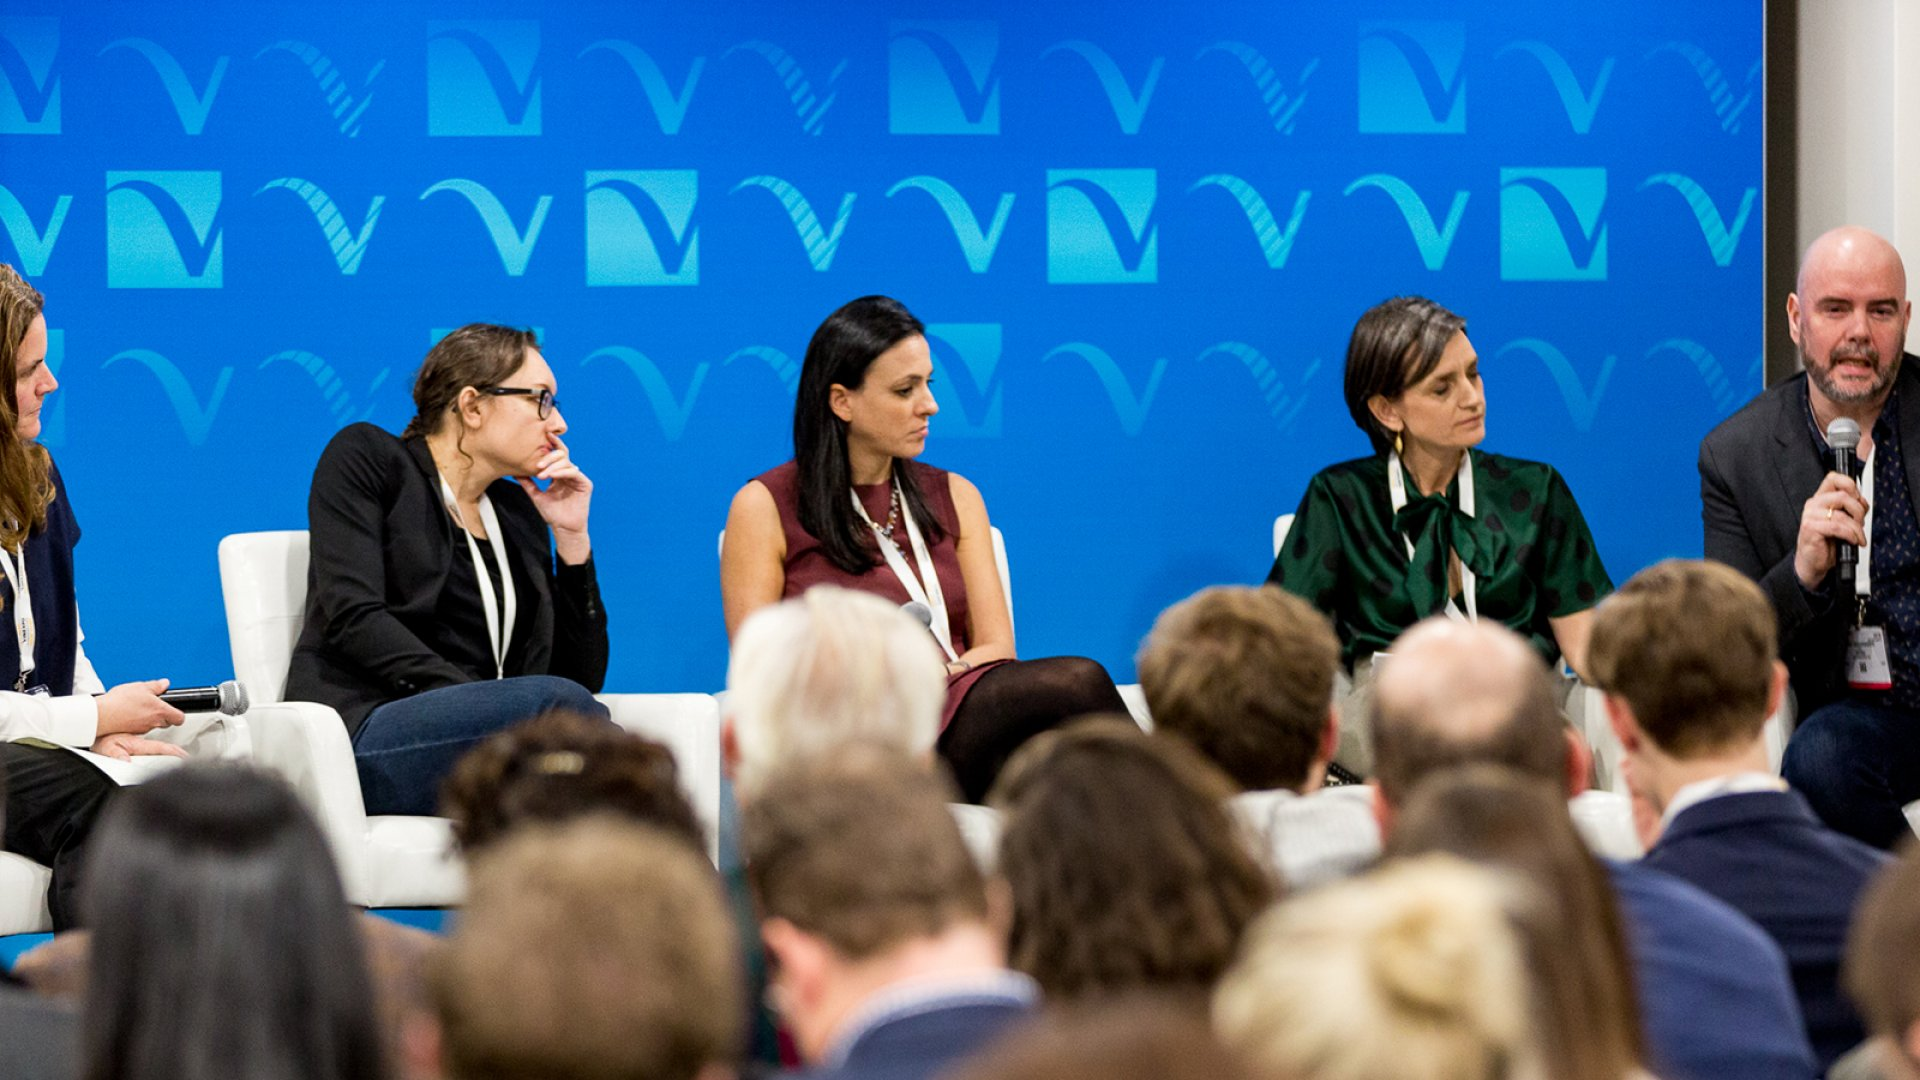 "This panel at Vinexpo New York in early March was an excellent opportunity to ""publicly boost colleagues."" From left to right: Moderator Cathy Huyghe of Enolytics, Pascaline Lepeltier MS of Racine's New York, Lara Crystal or Minibar Delivery, Valerie Gerard-Matsuura of Sopexa, and Heini Zachariassen of Vivino. Not pictured: Jacob Moynihan of Merchant23."